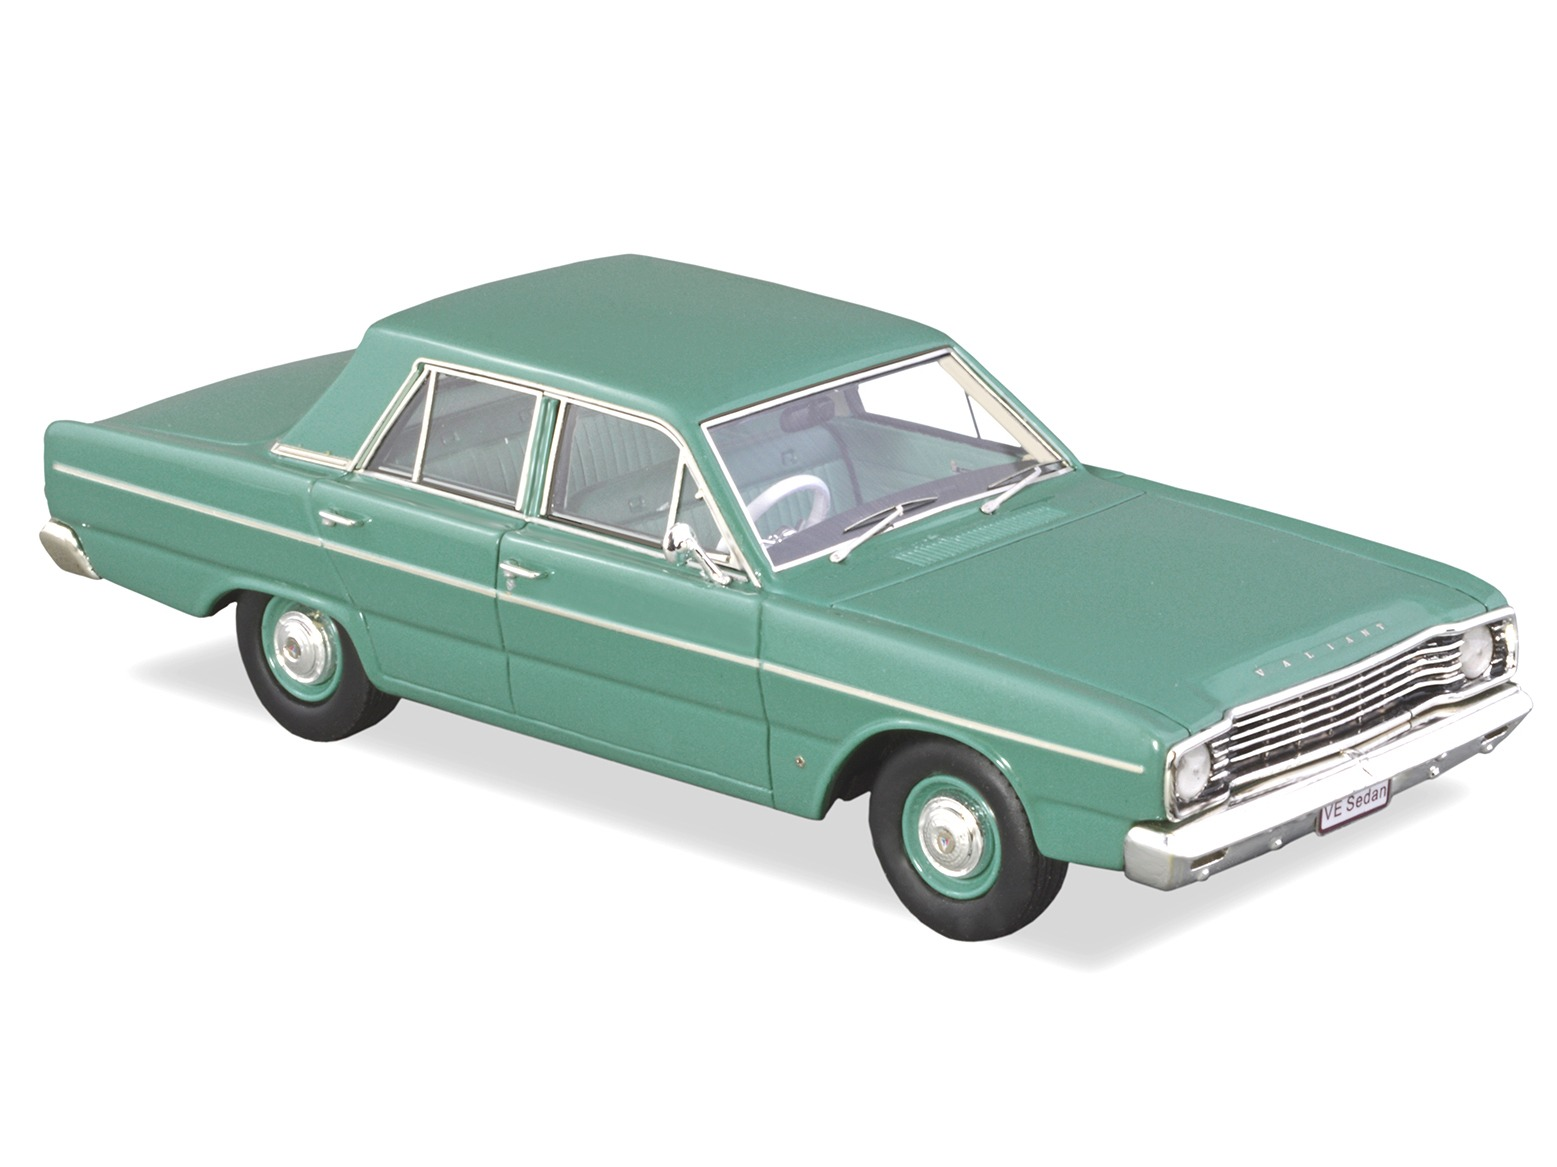 1967-69 VE Valiant Sedan – Green